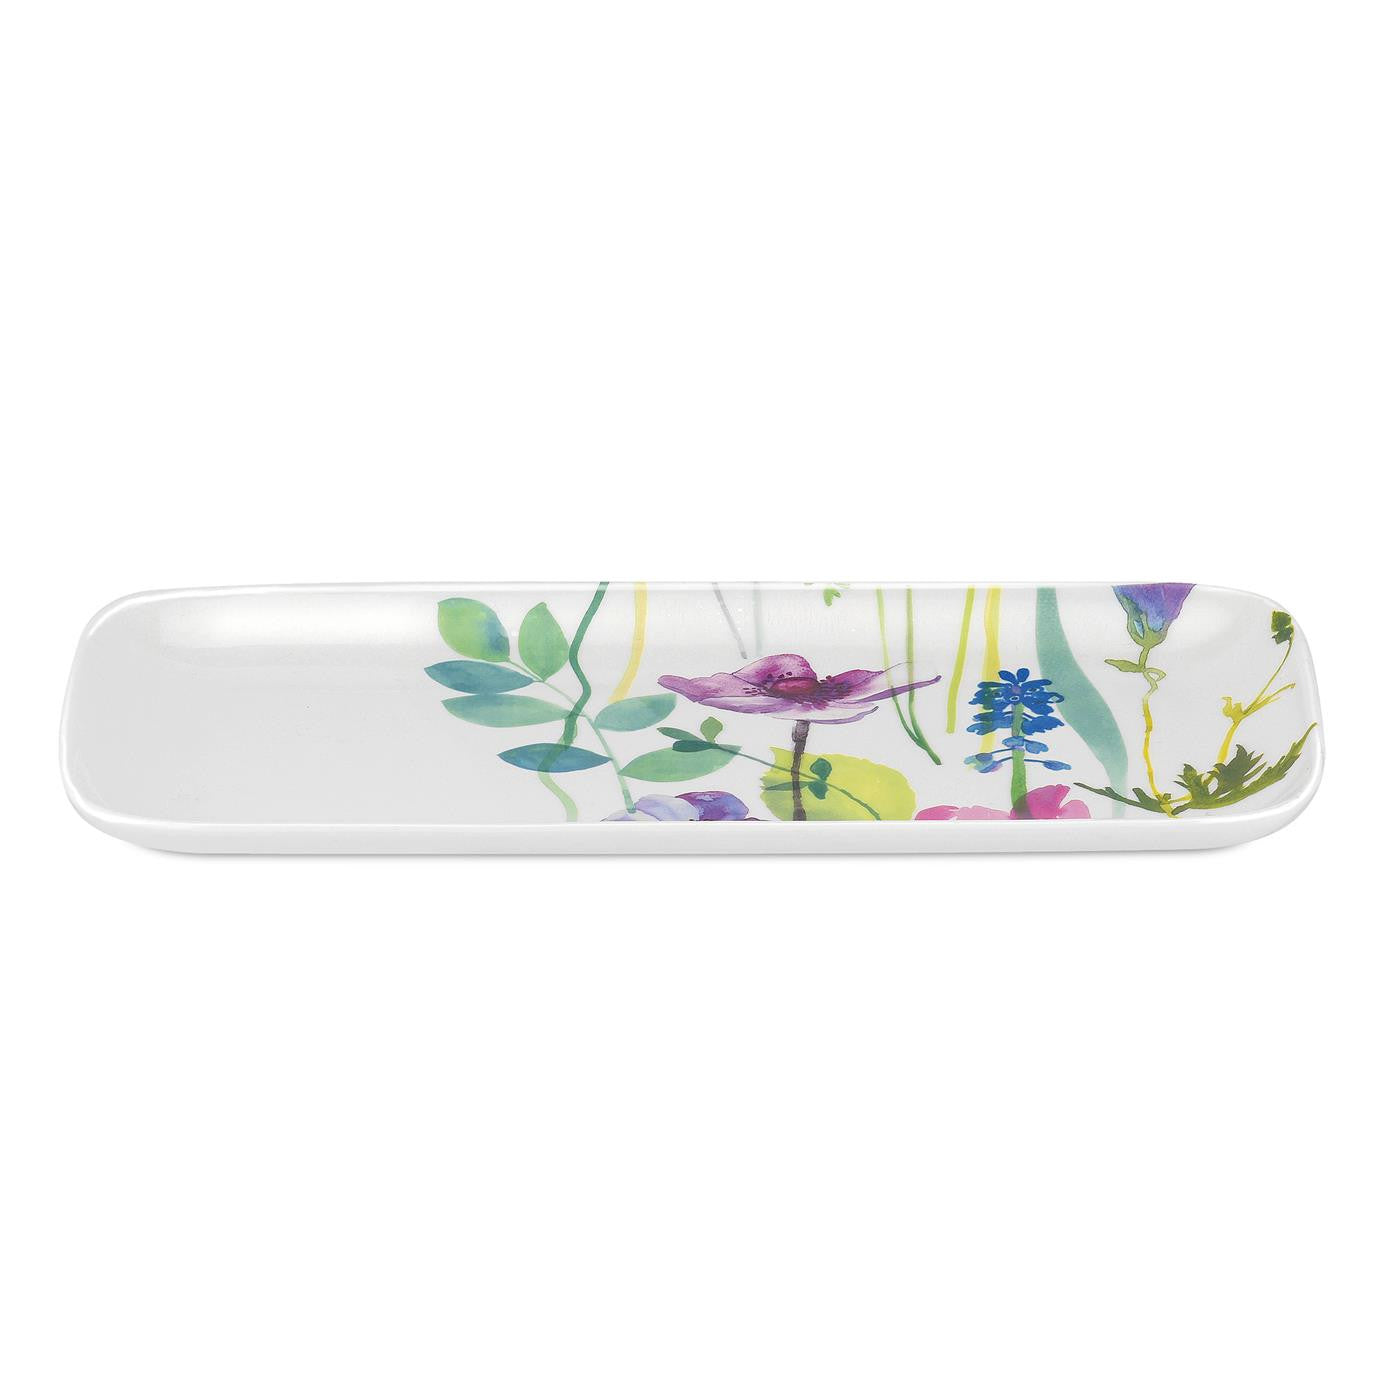 Water Garden - Sandwich Tray - Ceramic  sc 1 st  HOUSE OF PORTMEIRION : portmeirion water garden tableware - Pezcame.Com